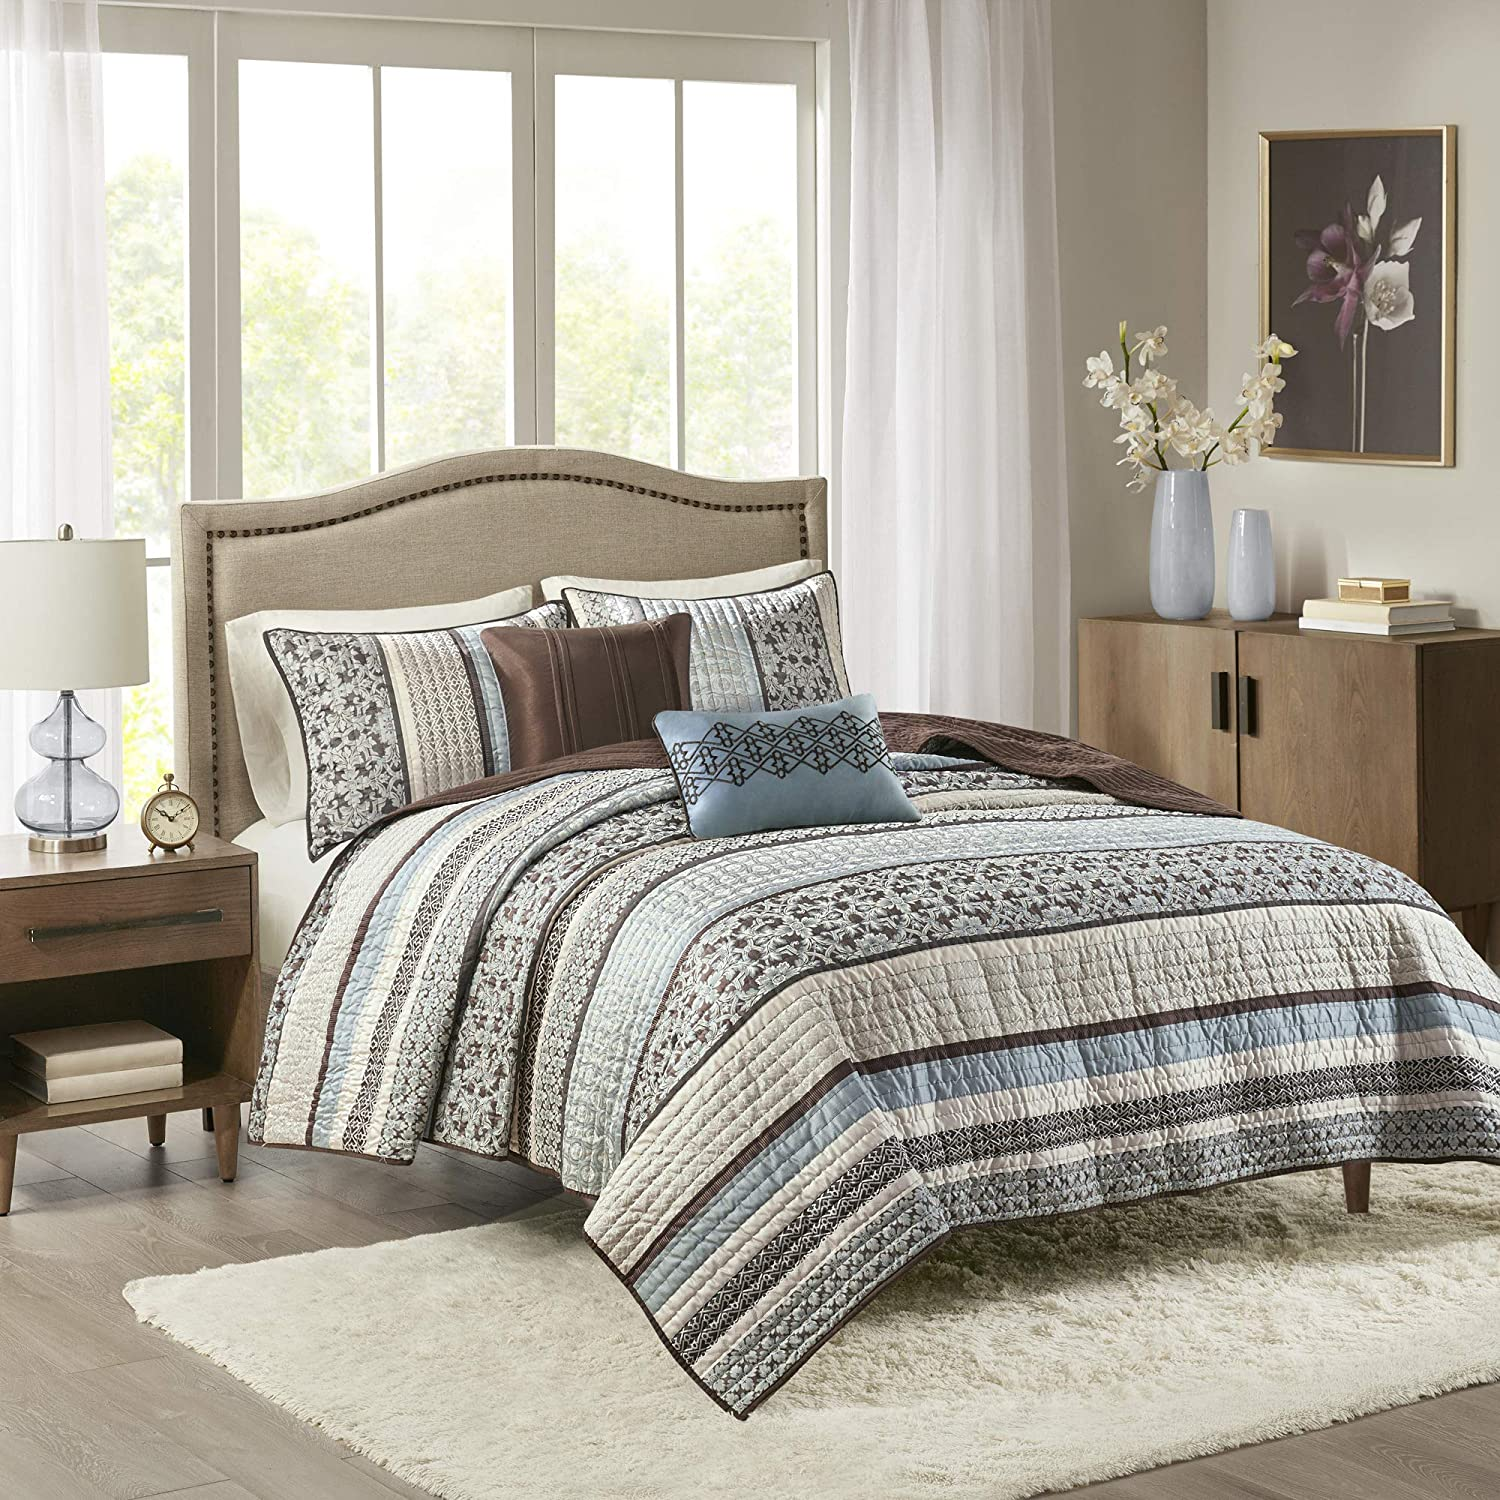 Madison Park Princeton 5 Piece Quilted Coverlet Set, Full/Queen, Blue